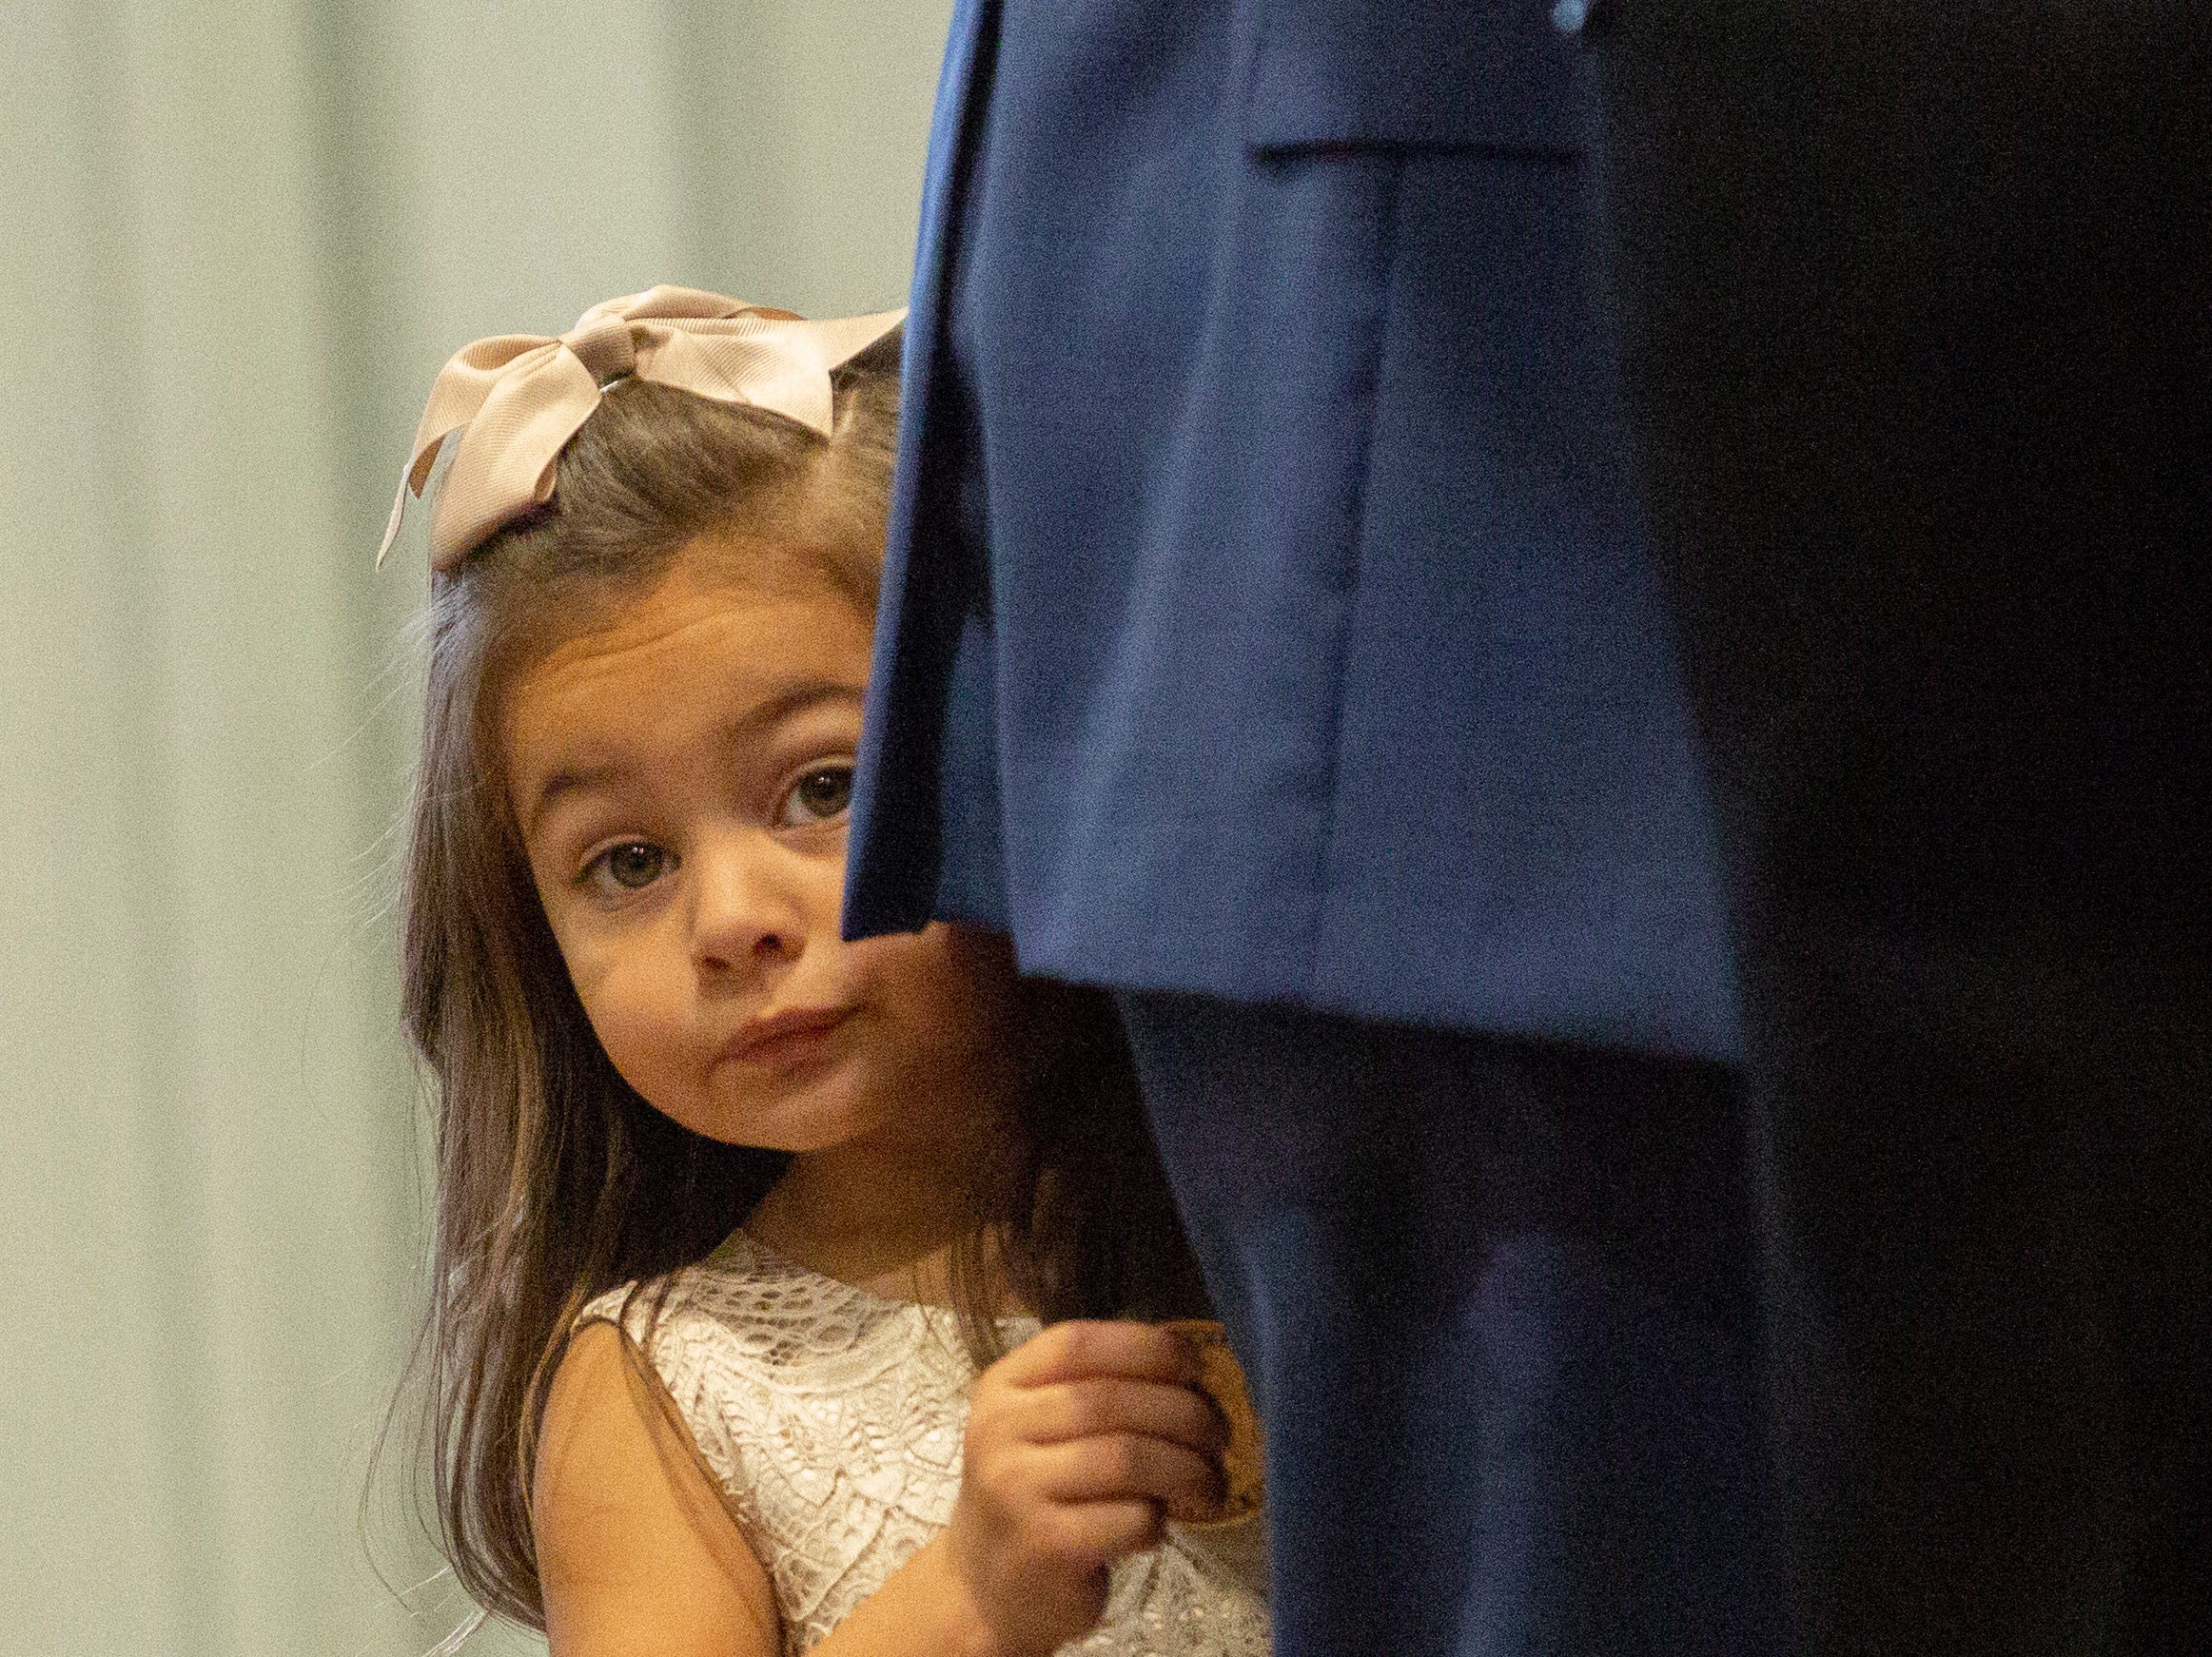 A young girl peeks out from behind her guardian during a police graduation ceremony.